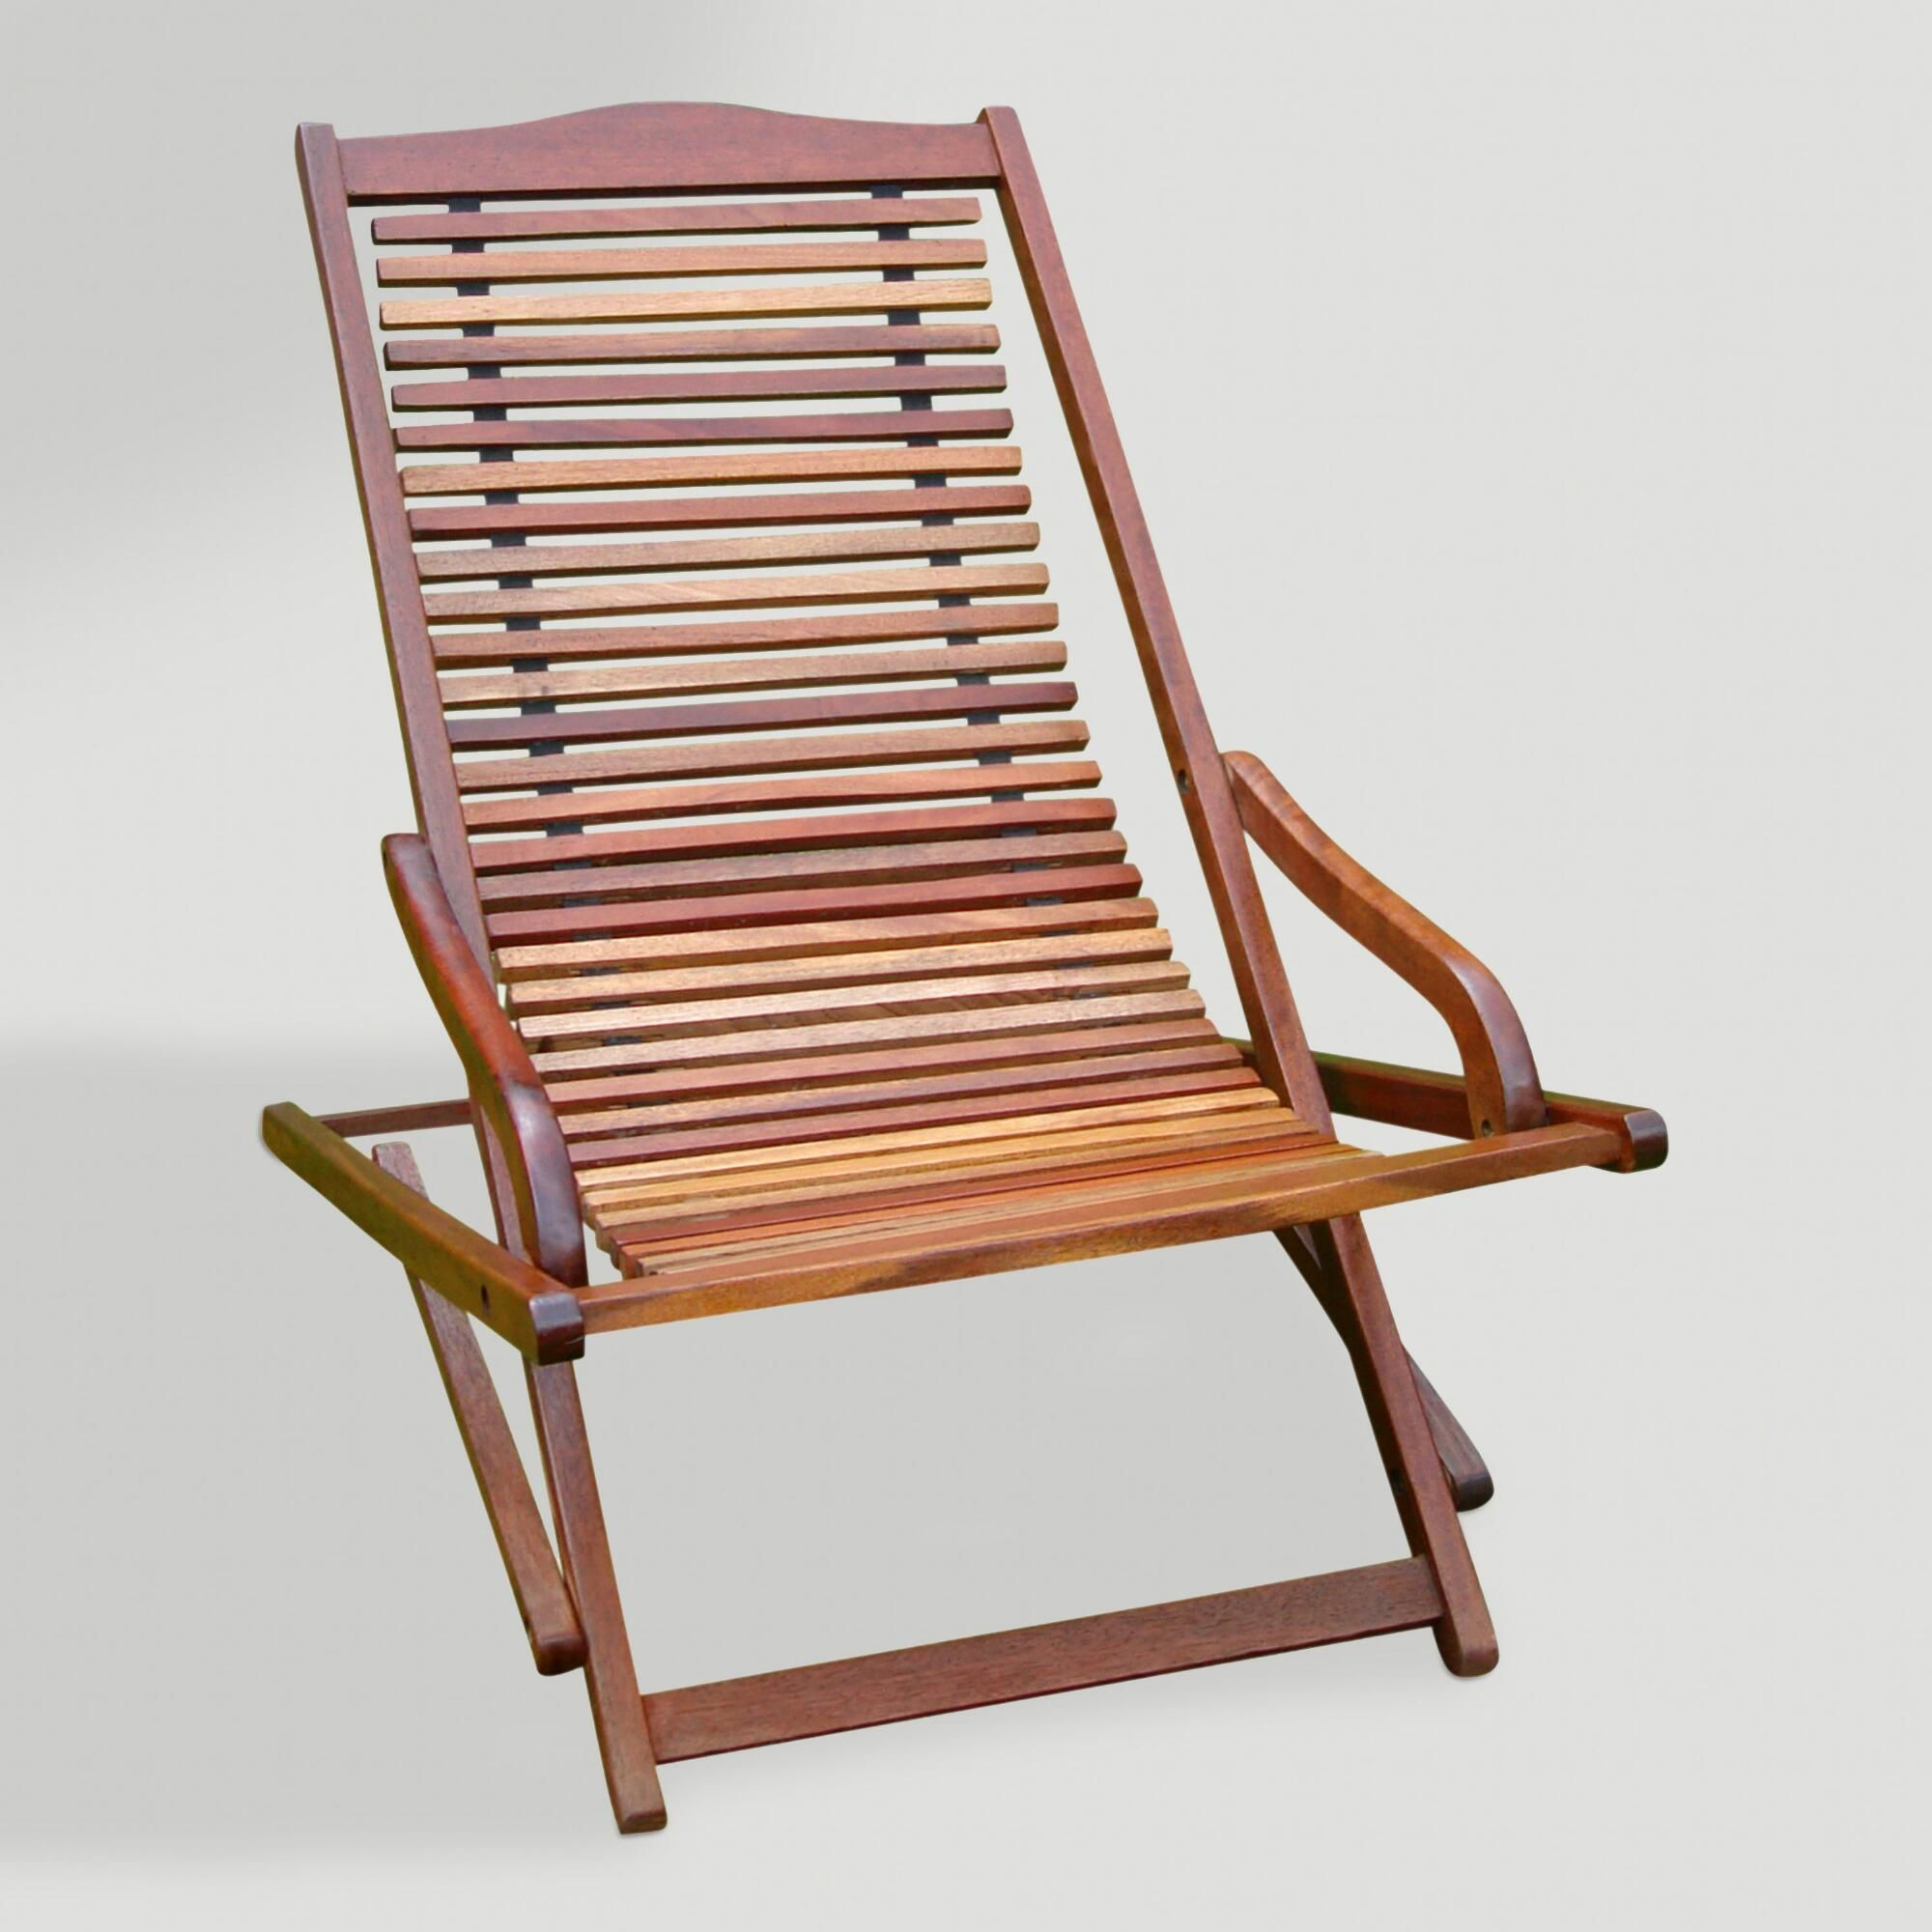 Patio Folding Chaise Lounge Lounge Chair Outdoor Patio Lounge